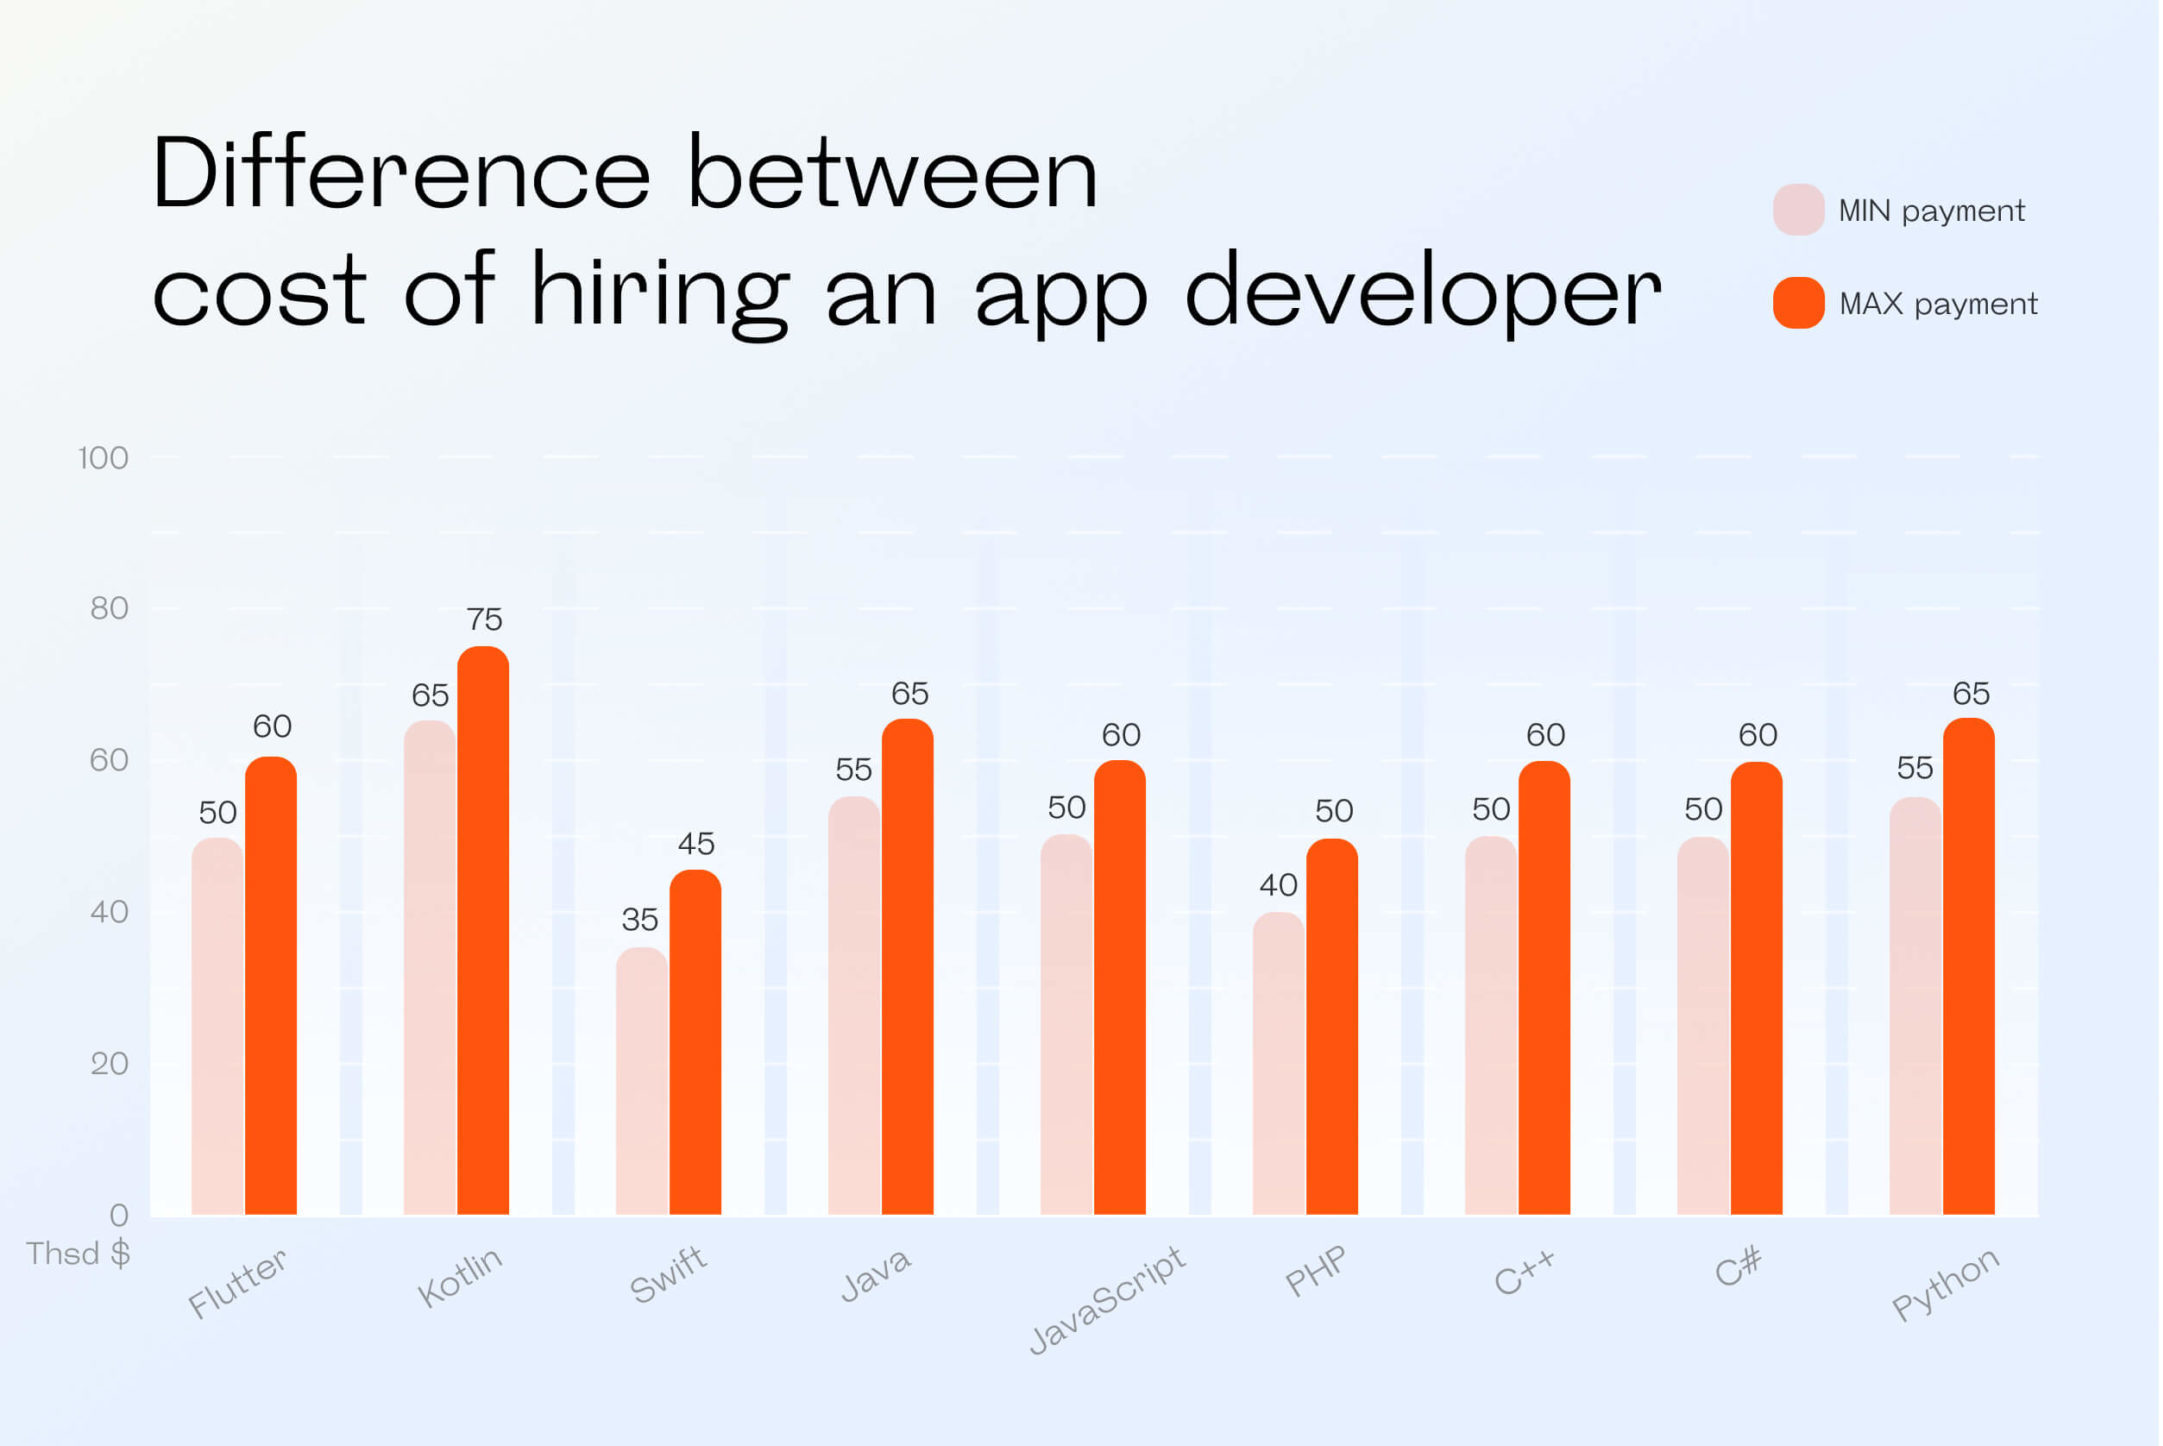 Graphics: difference between cost of hiring an app developer